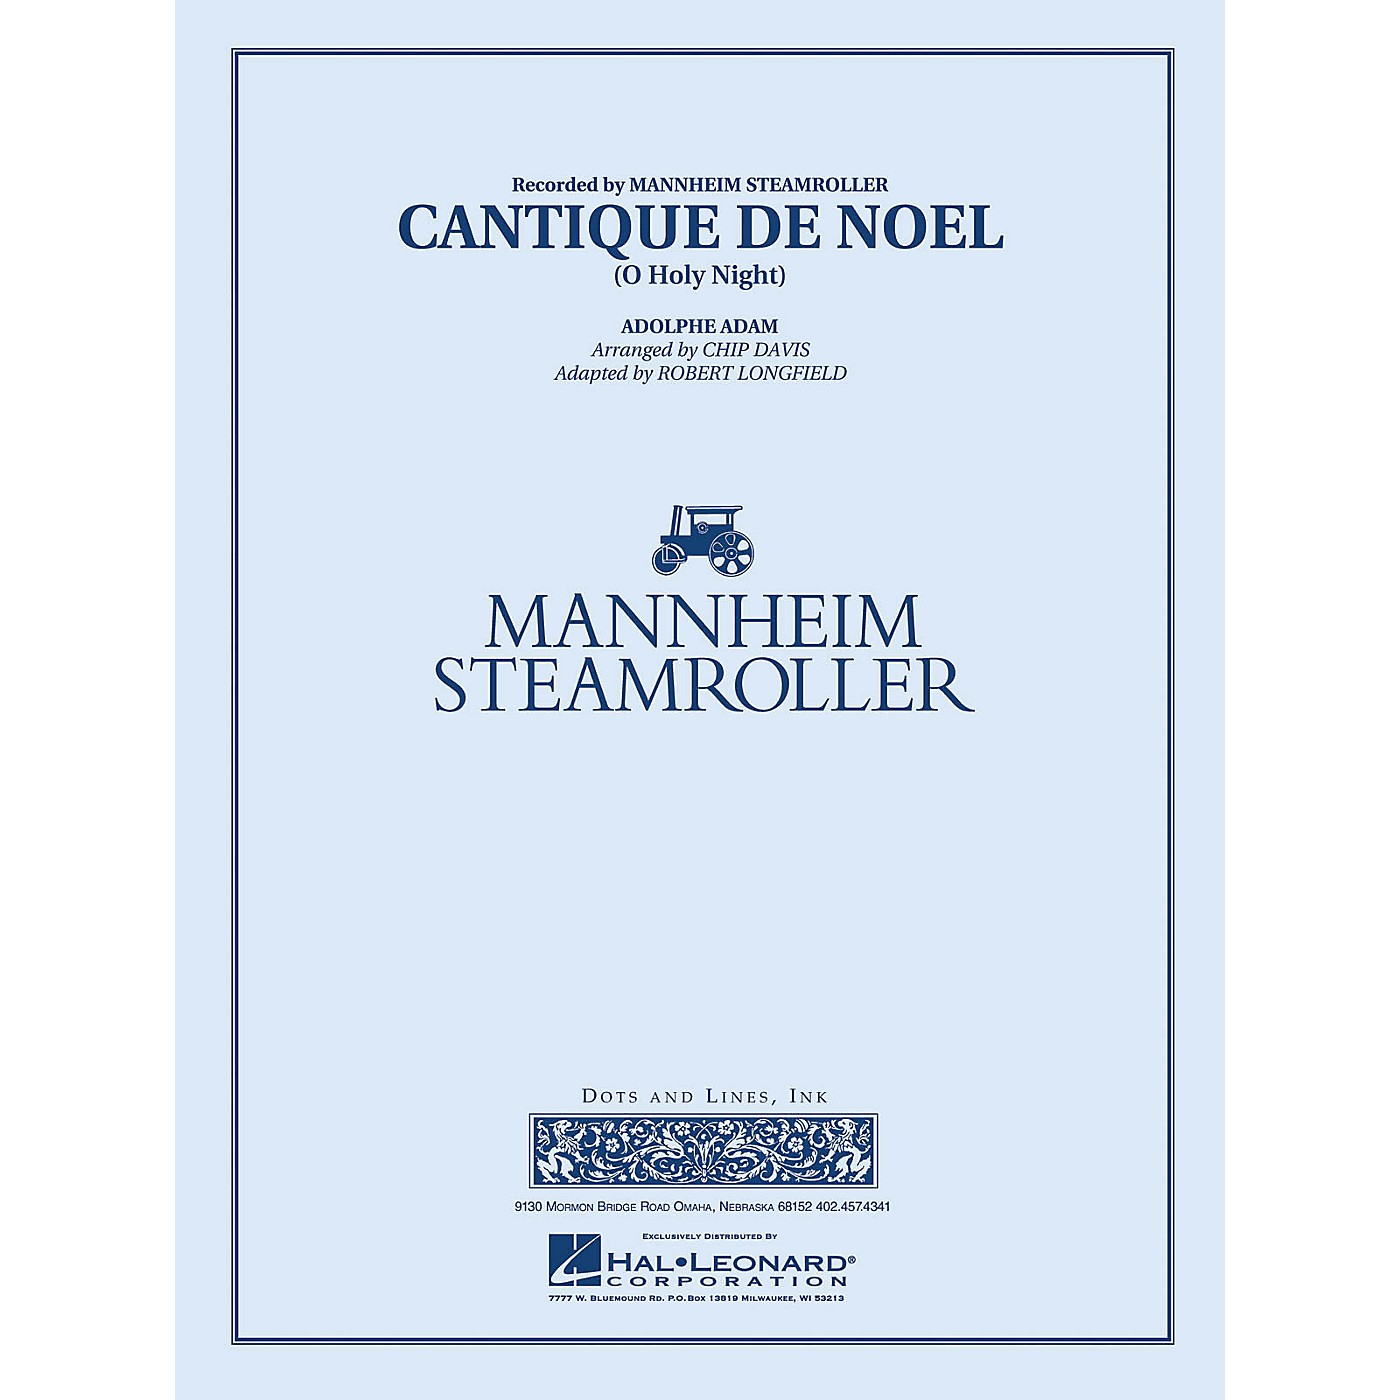 Hal Leonard Cantique de Noel (O Holy Night) - Young Concert Band Series Level 3 arranged by Robert Longfield thumbnail